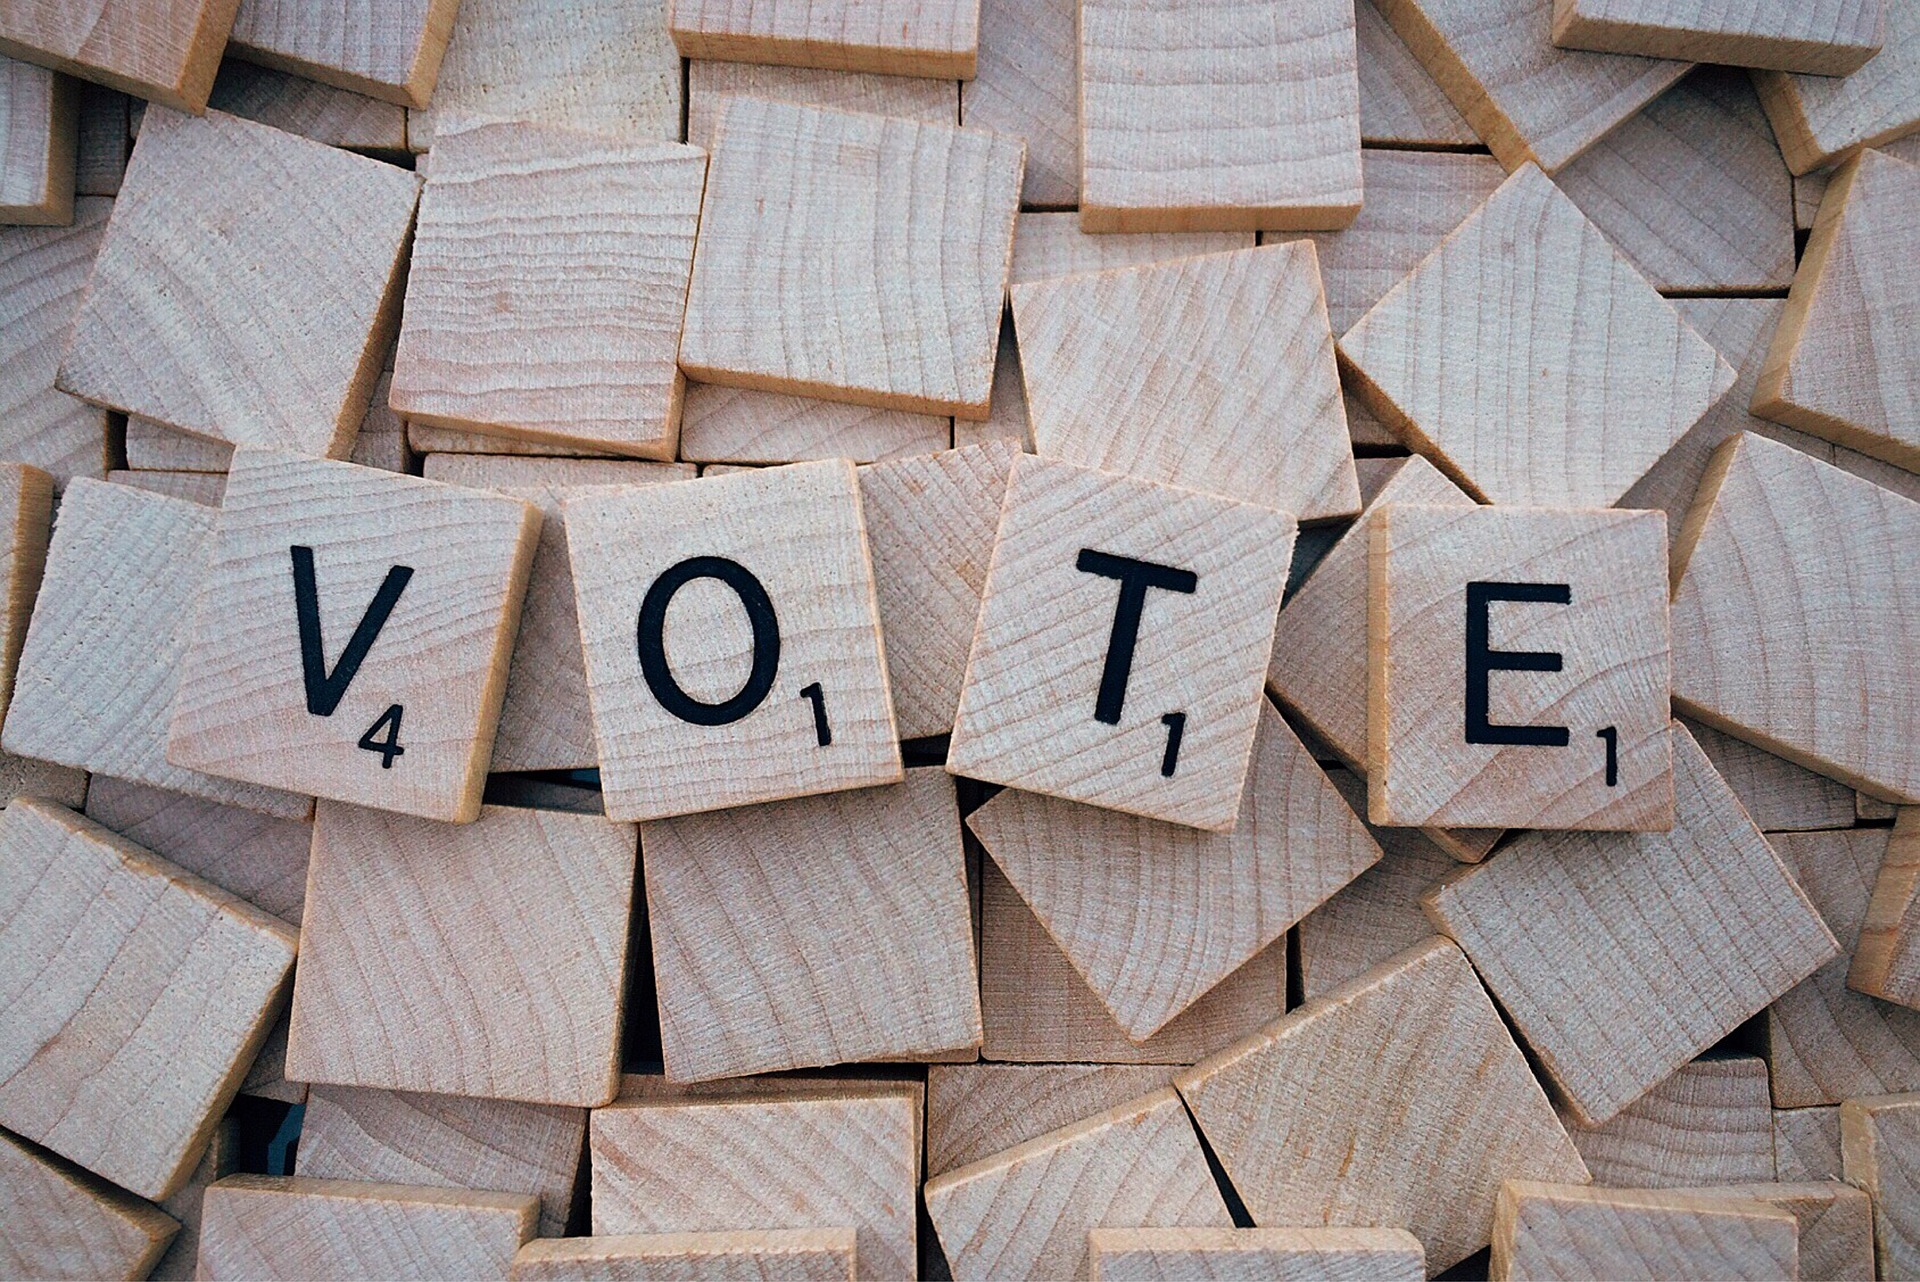 Why we're doing it... - Did you know that, on average, 47% of registered Arizona voters do not vote in midterm elections? Or that approximately 25% of eligible Arizonans are not registered to vote? We want to change that. Your vote is your voice. Use it.